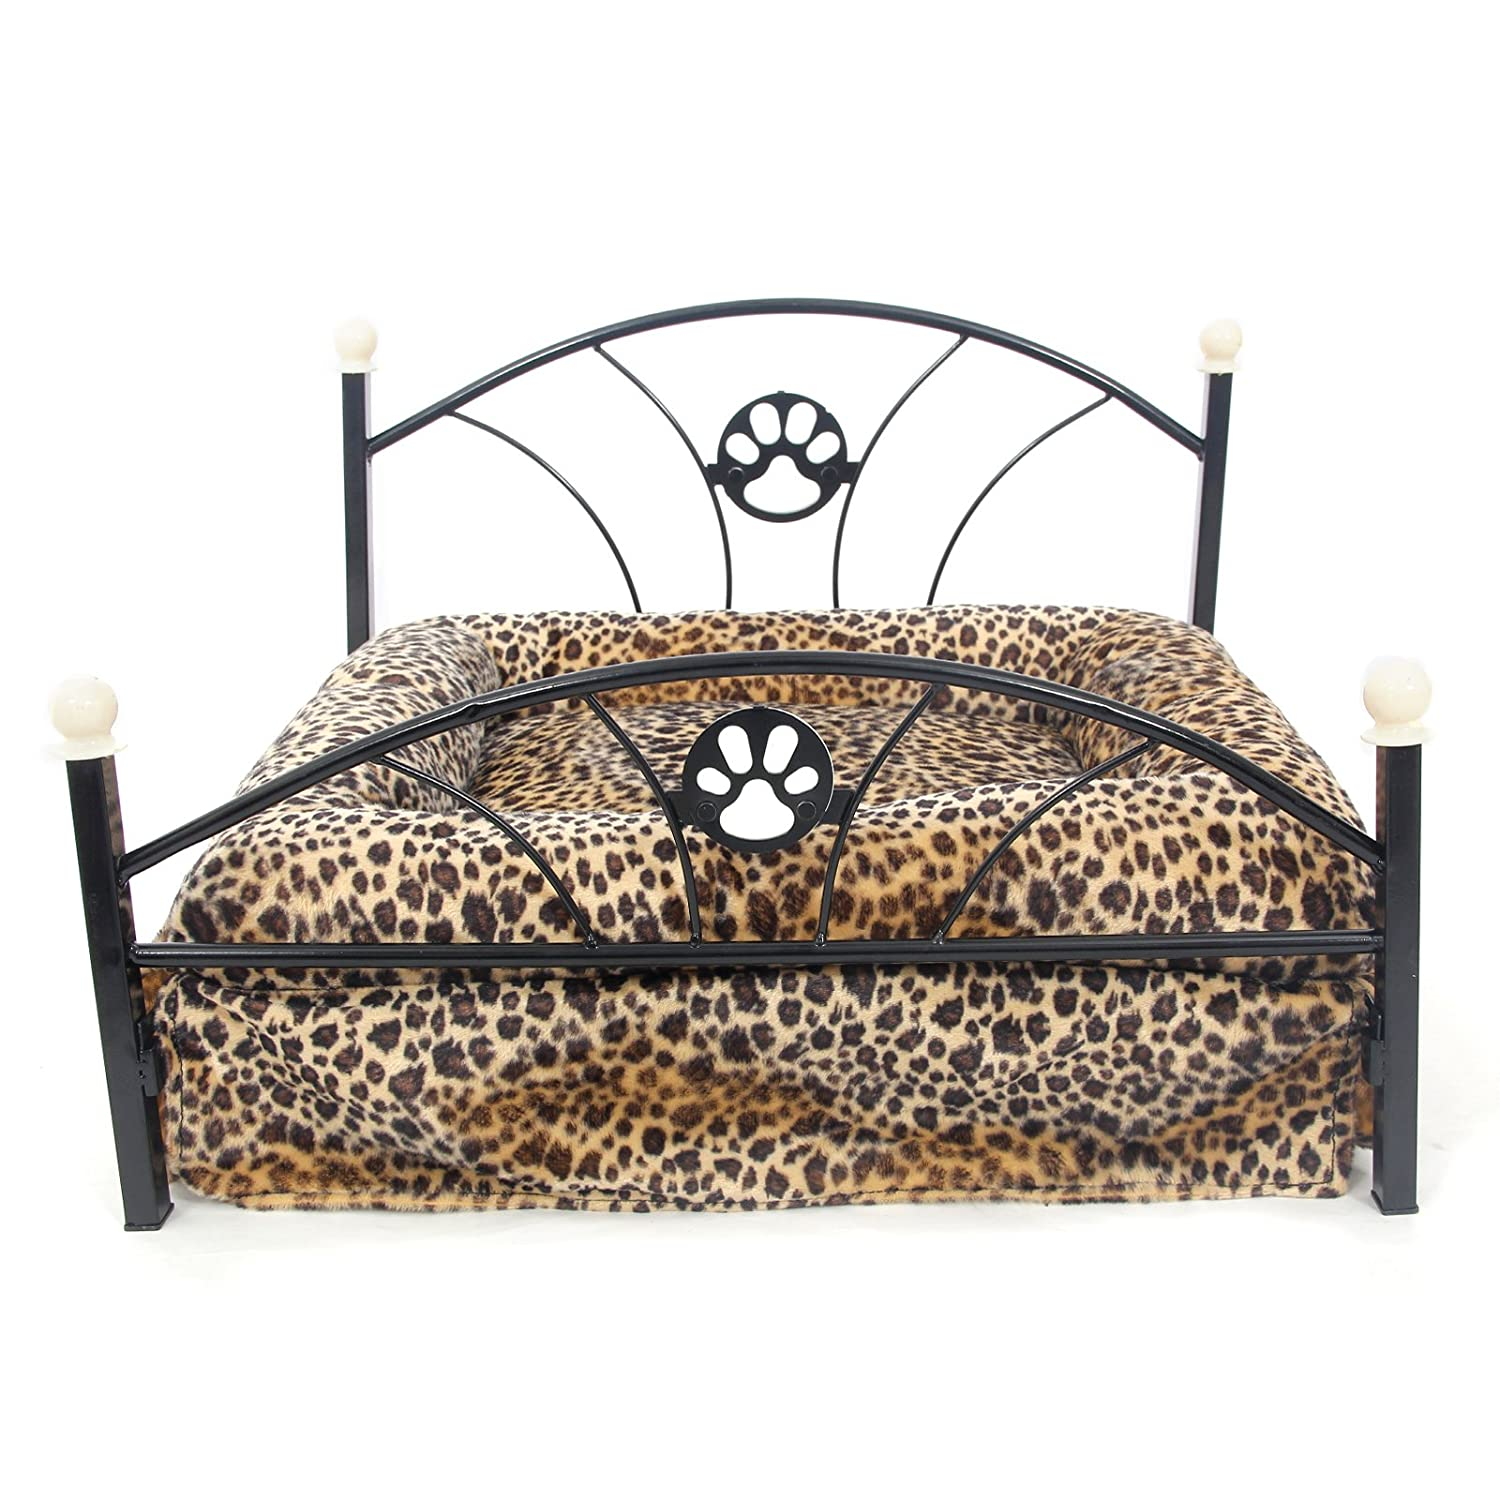 Amazon.com : PAWZ Road Metal Frame Pet Bed for Small and Medium Dogs with Mattress Leopard : Pet Supplies